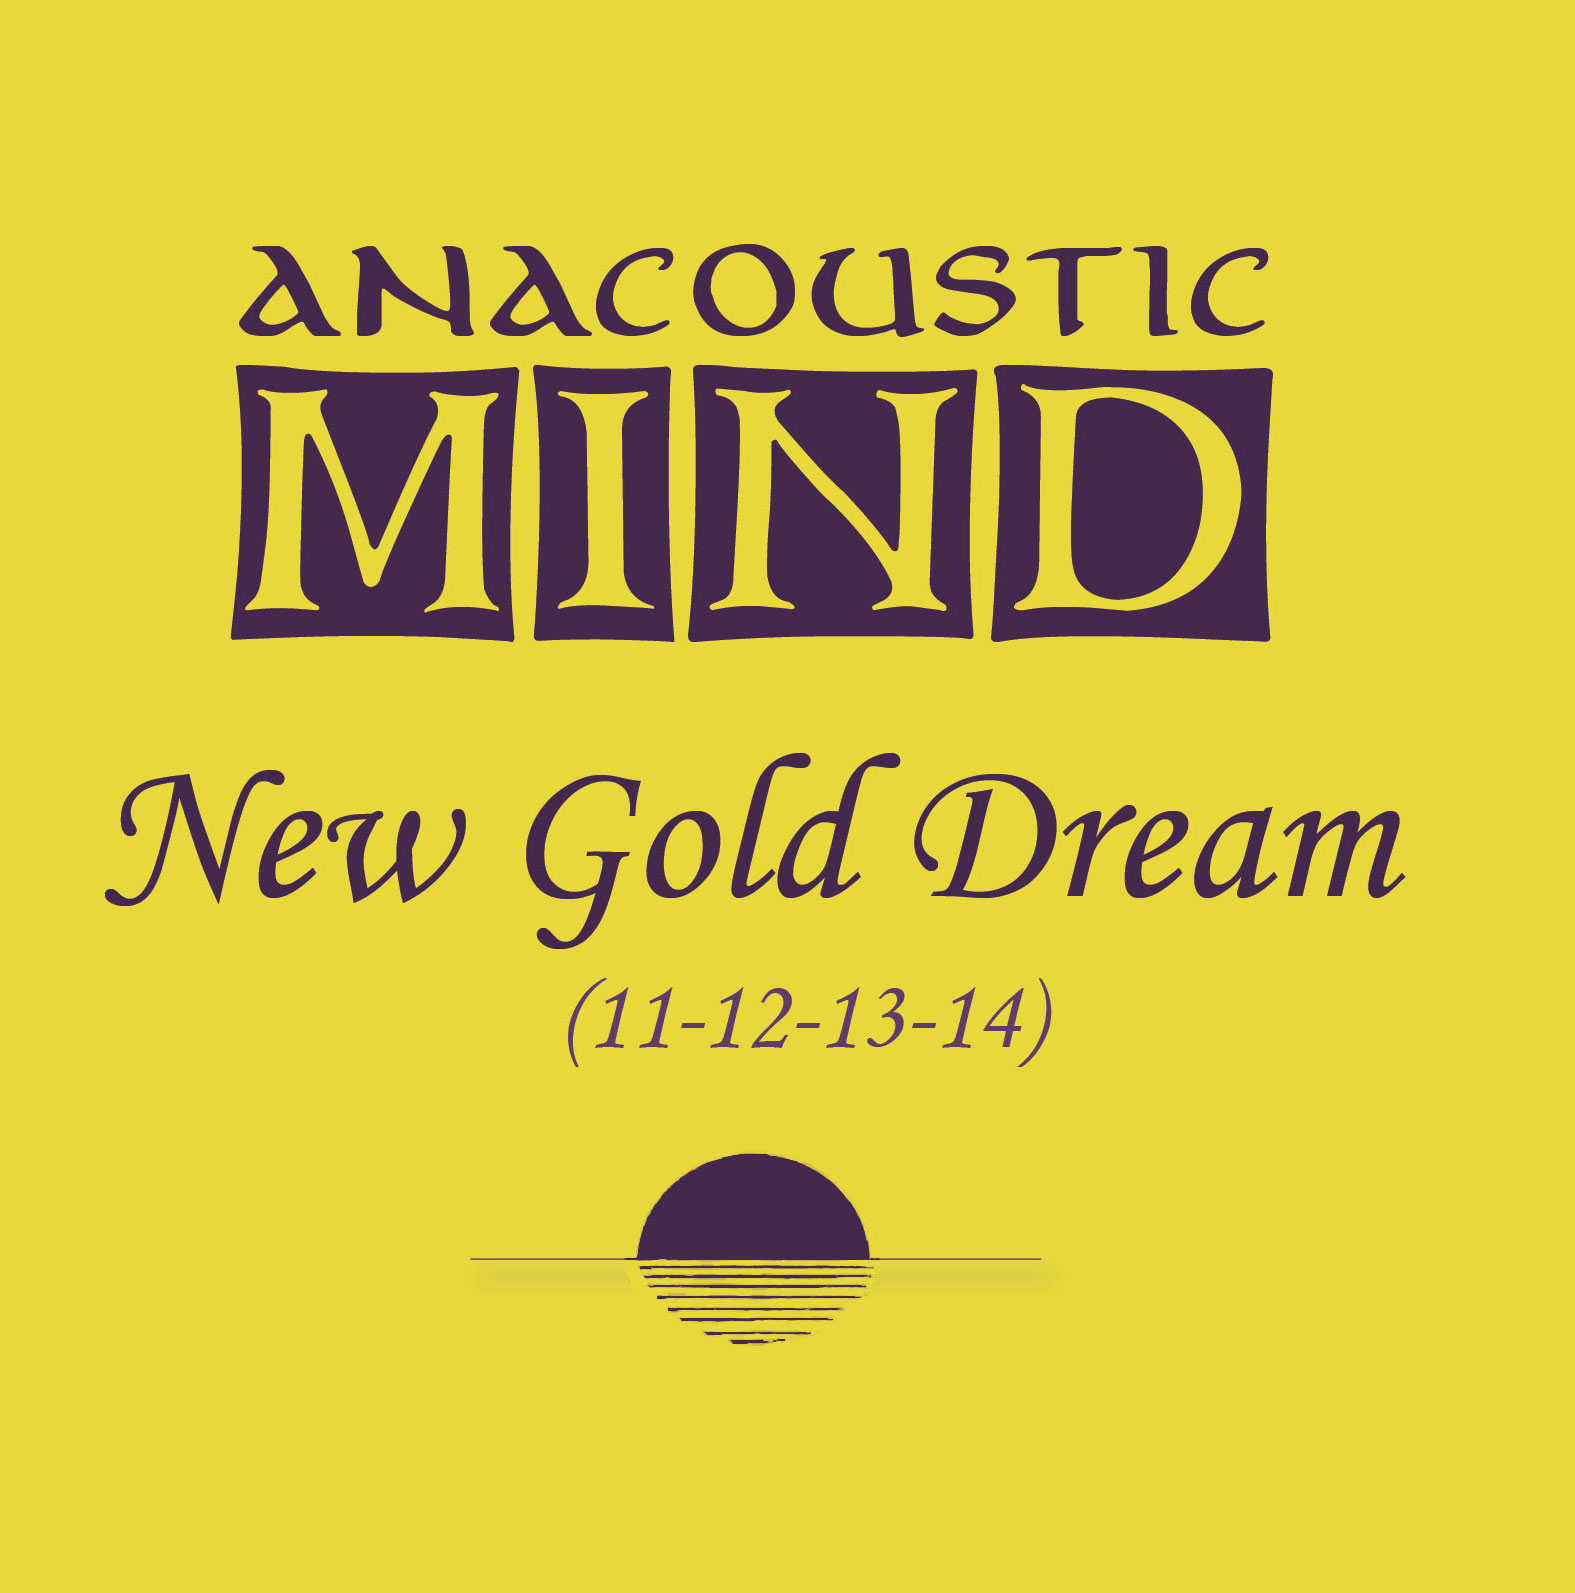 New Gold Dream (11-12-13-14)